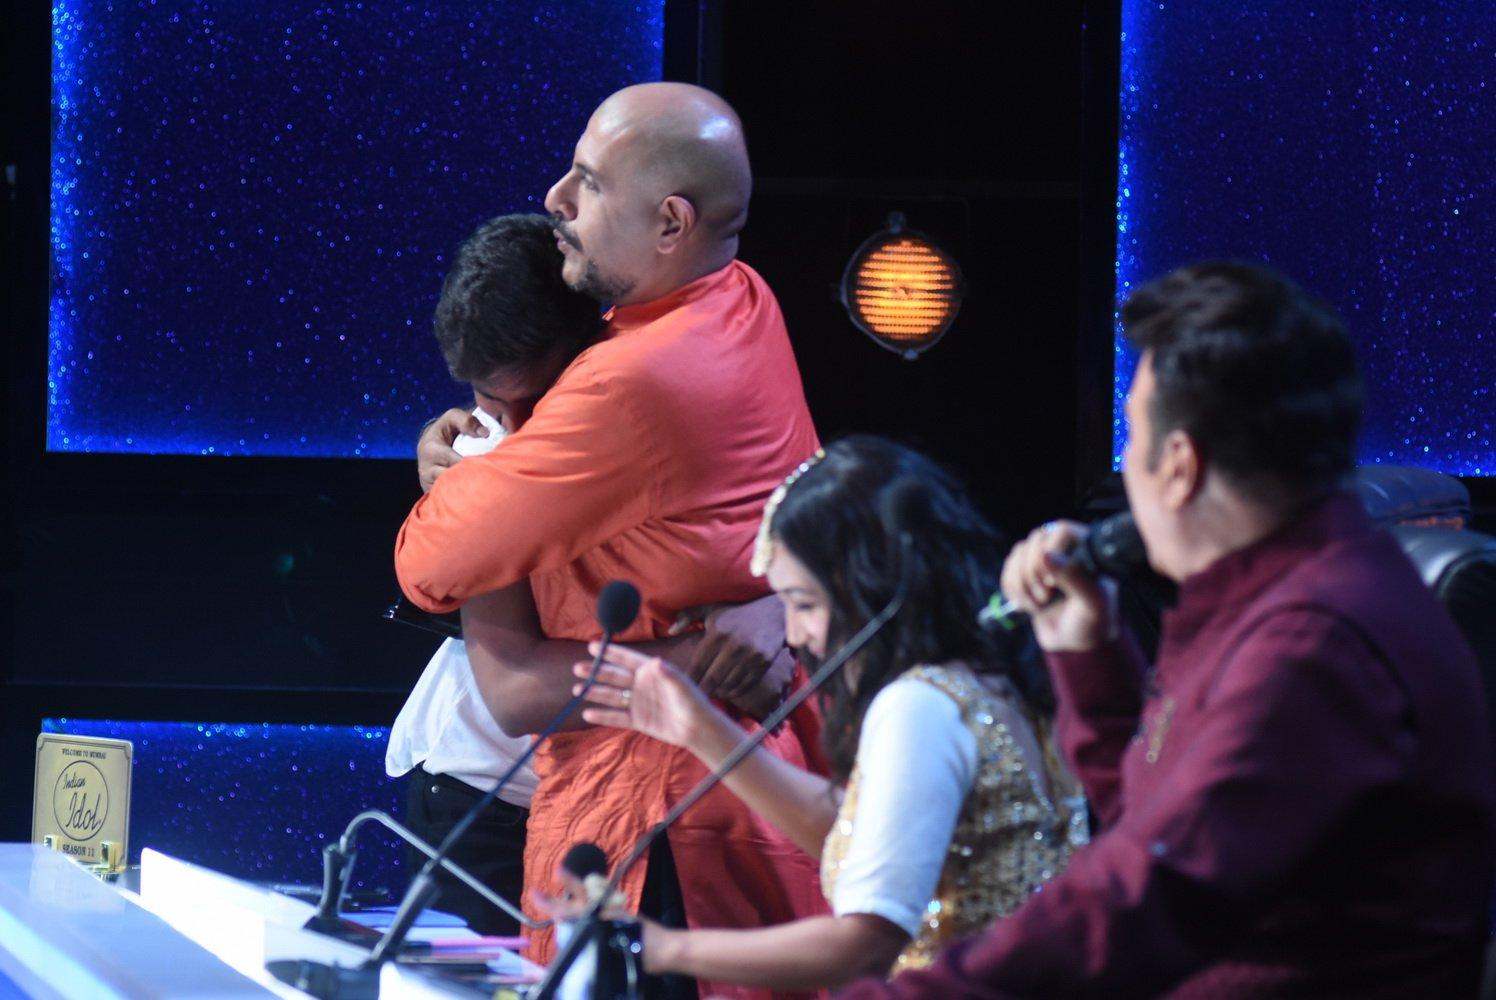 sunny indian idol 11